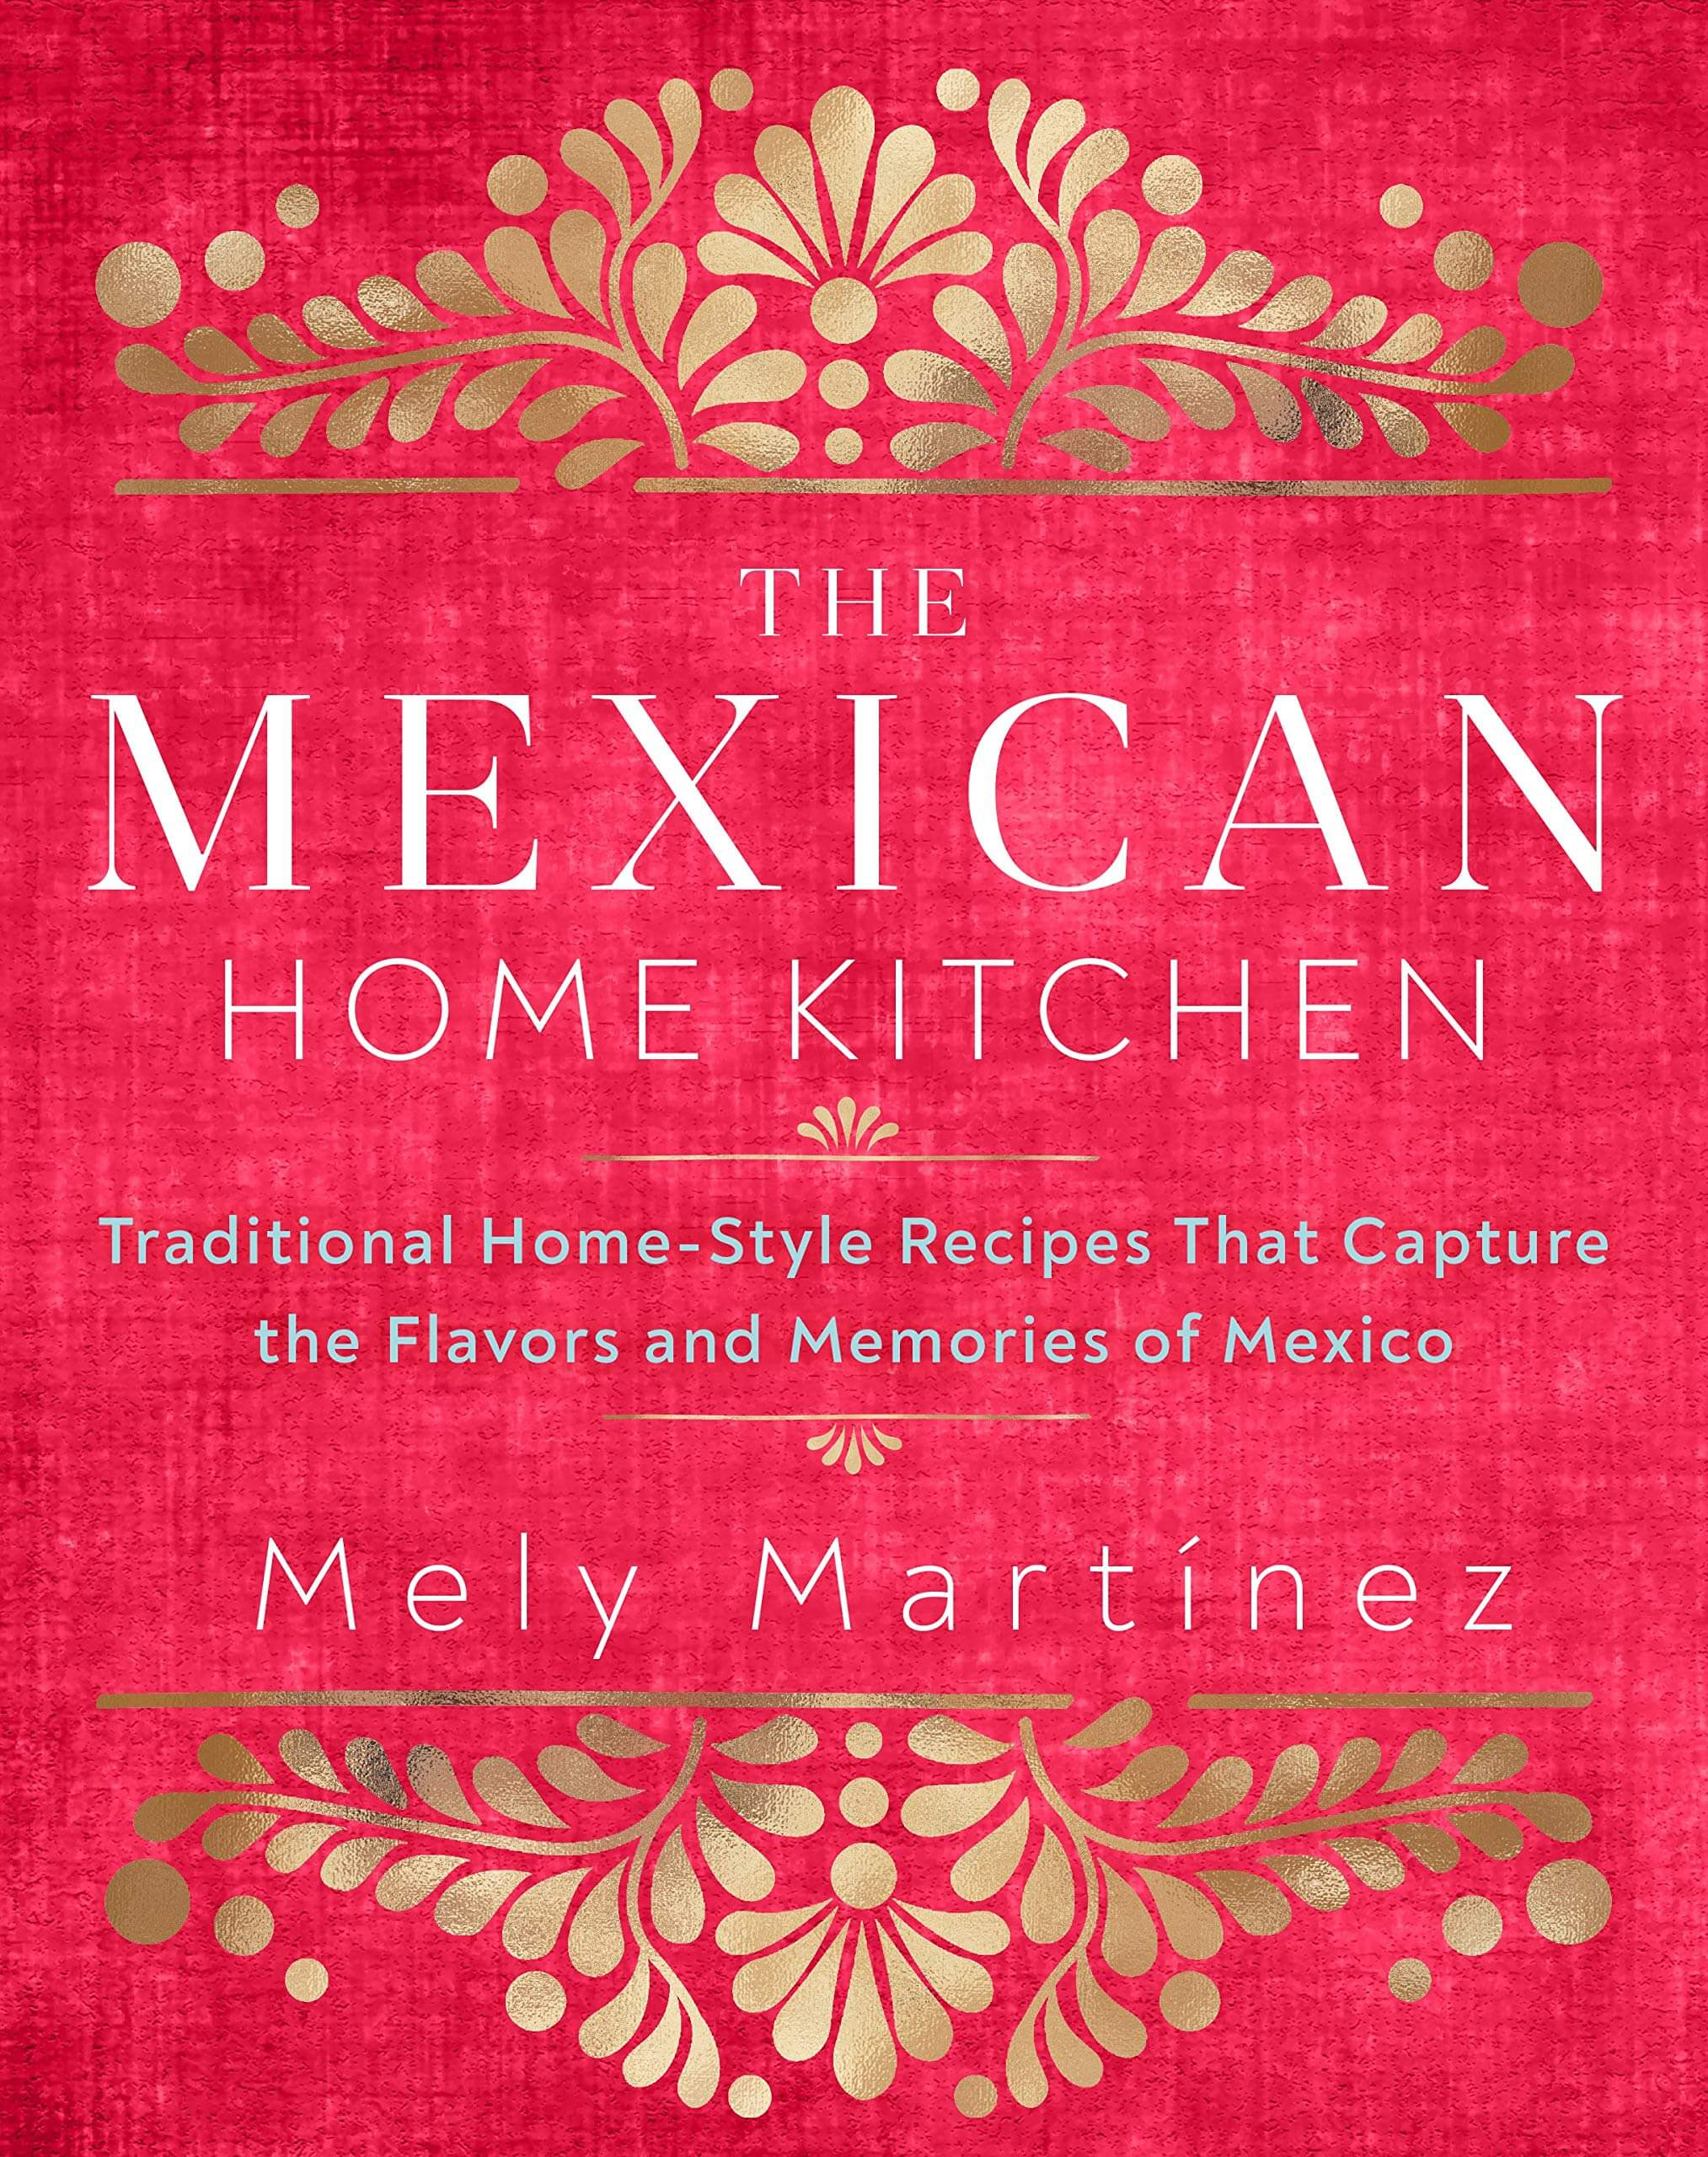 The Mexican Home Kitchen book cover image